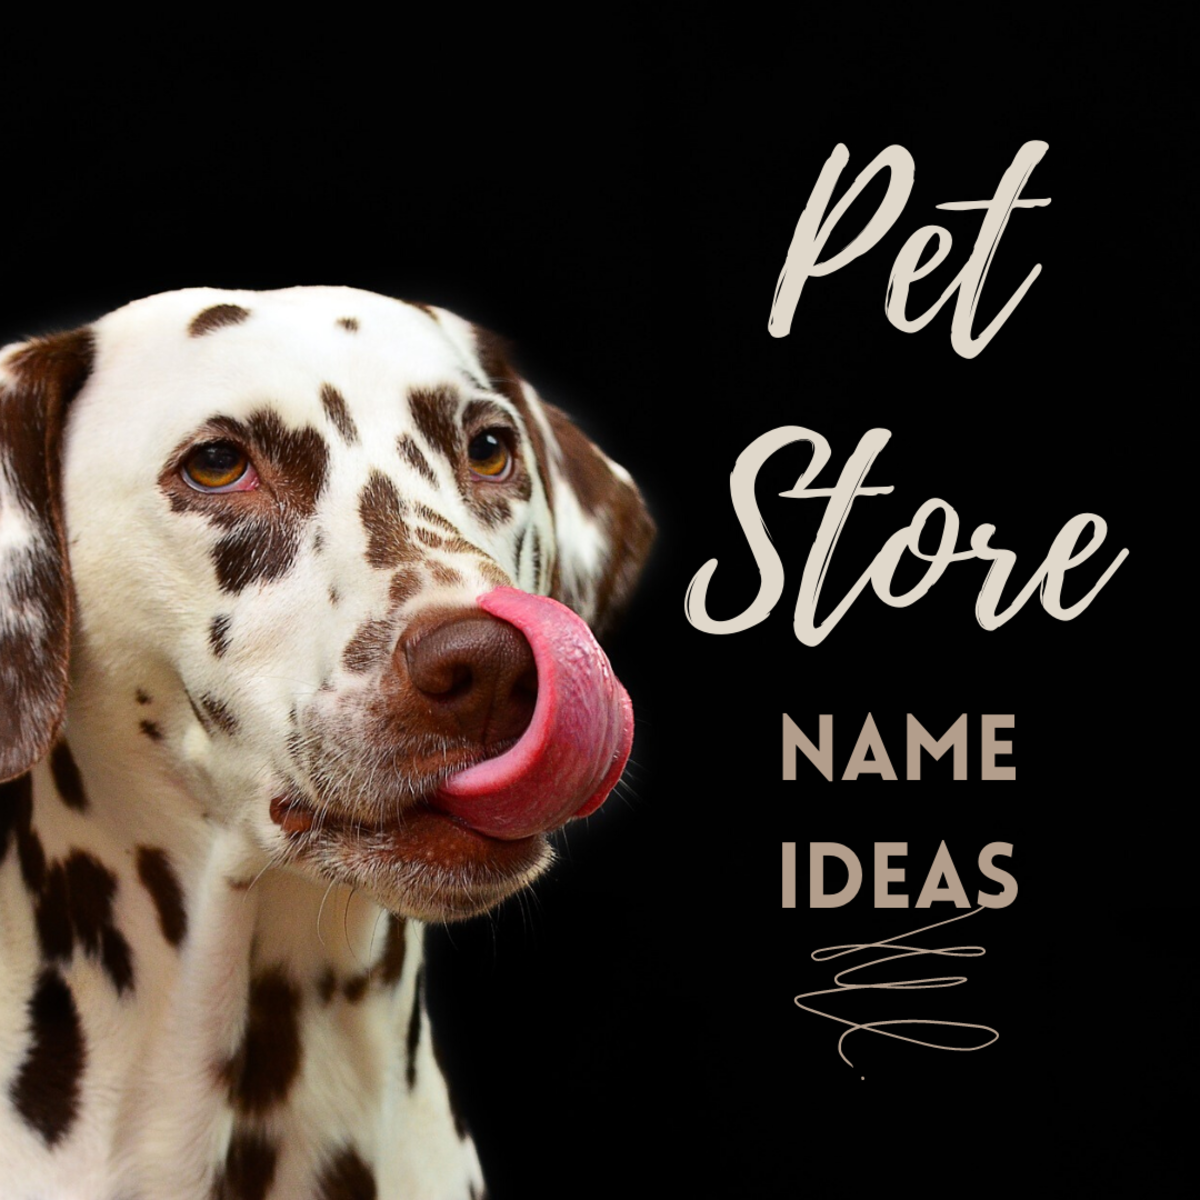 Get 50 ideas for naming your new pet store, plus tips on how to pick the best name!